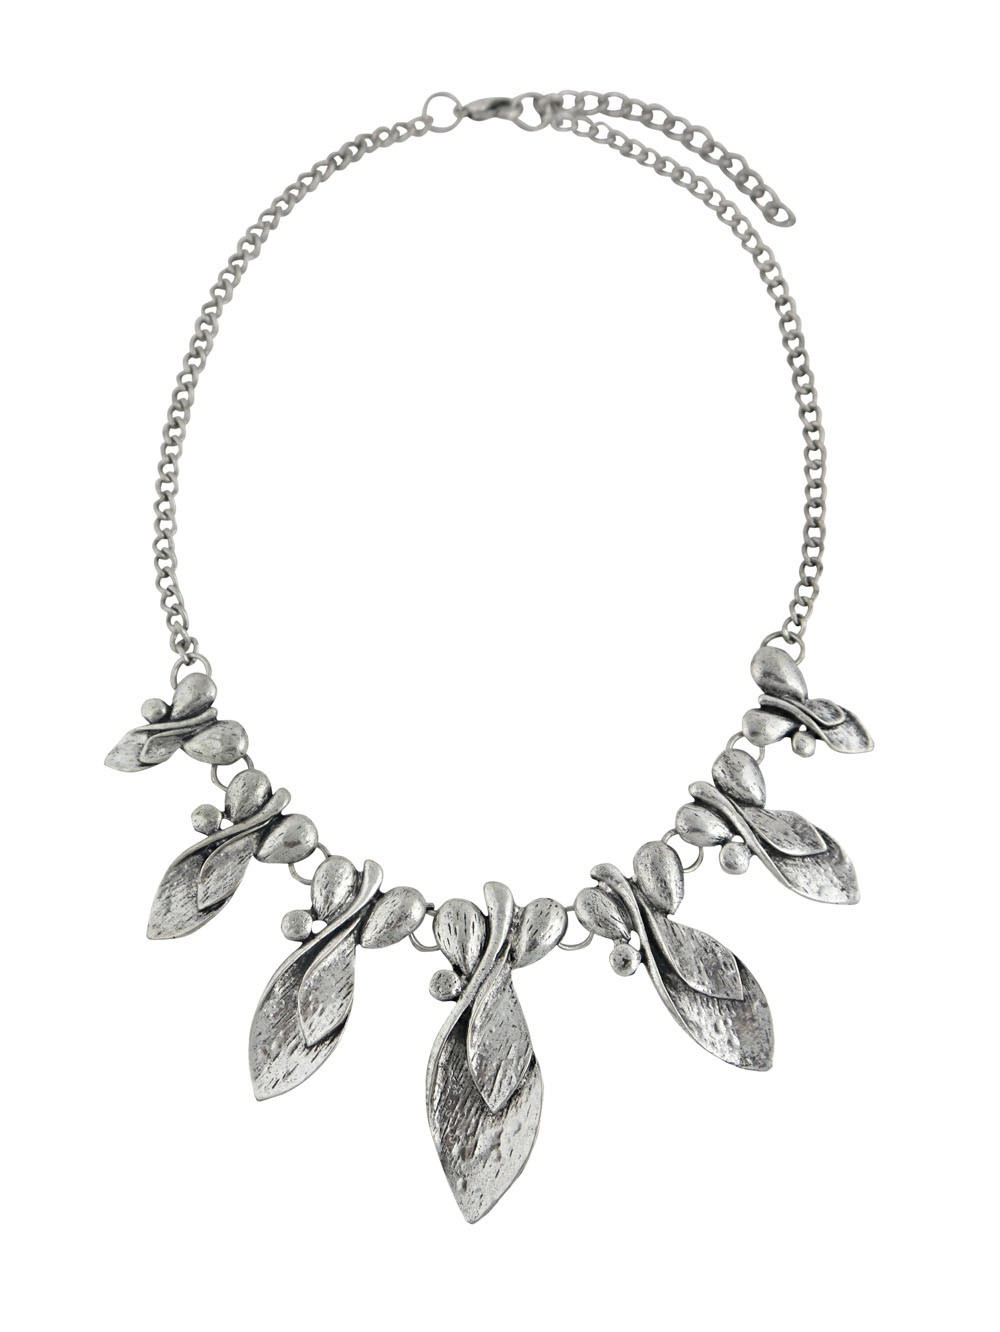 Antique Silver Leaf Pendant Necklace